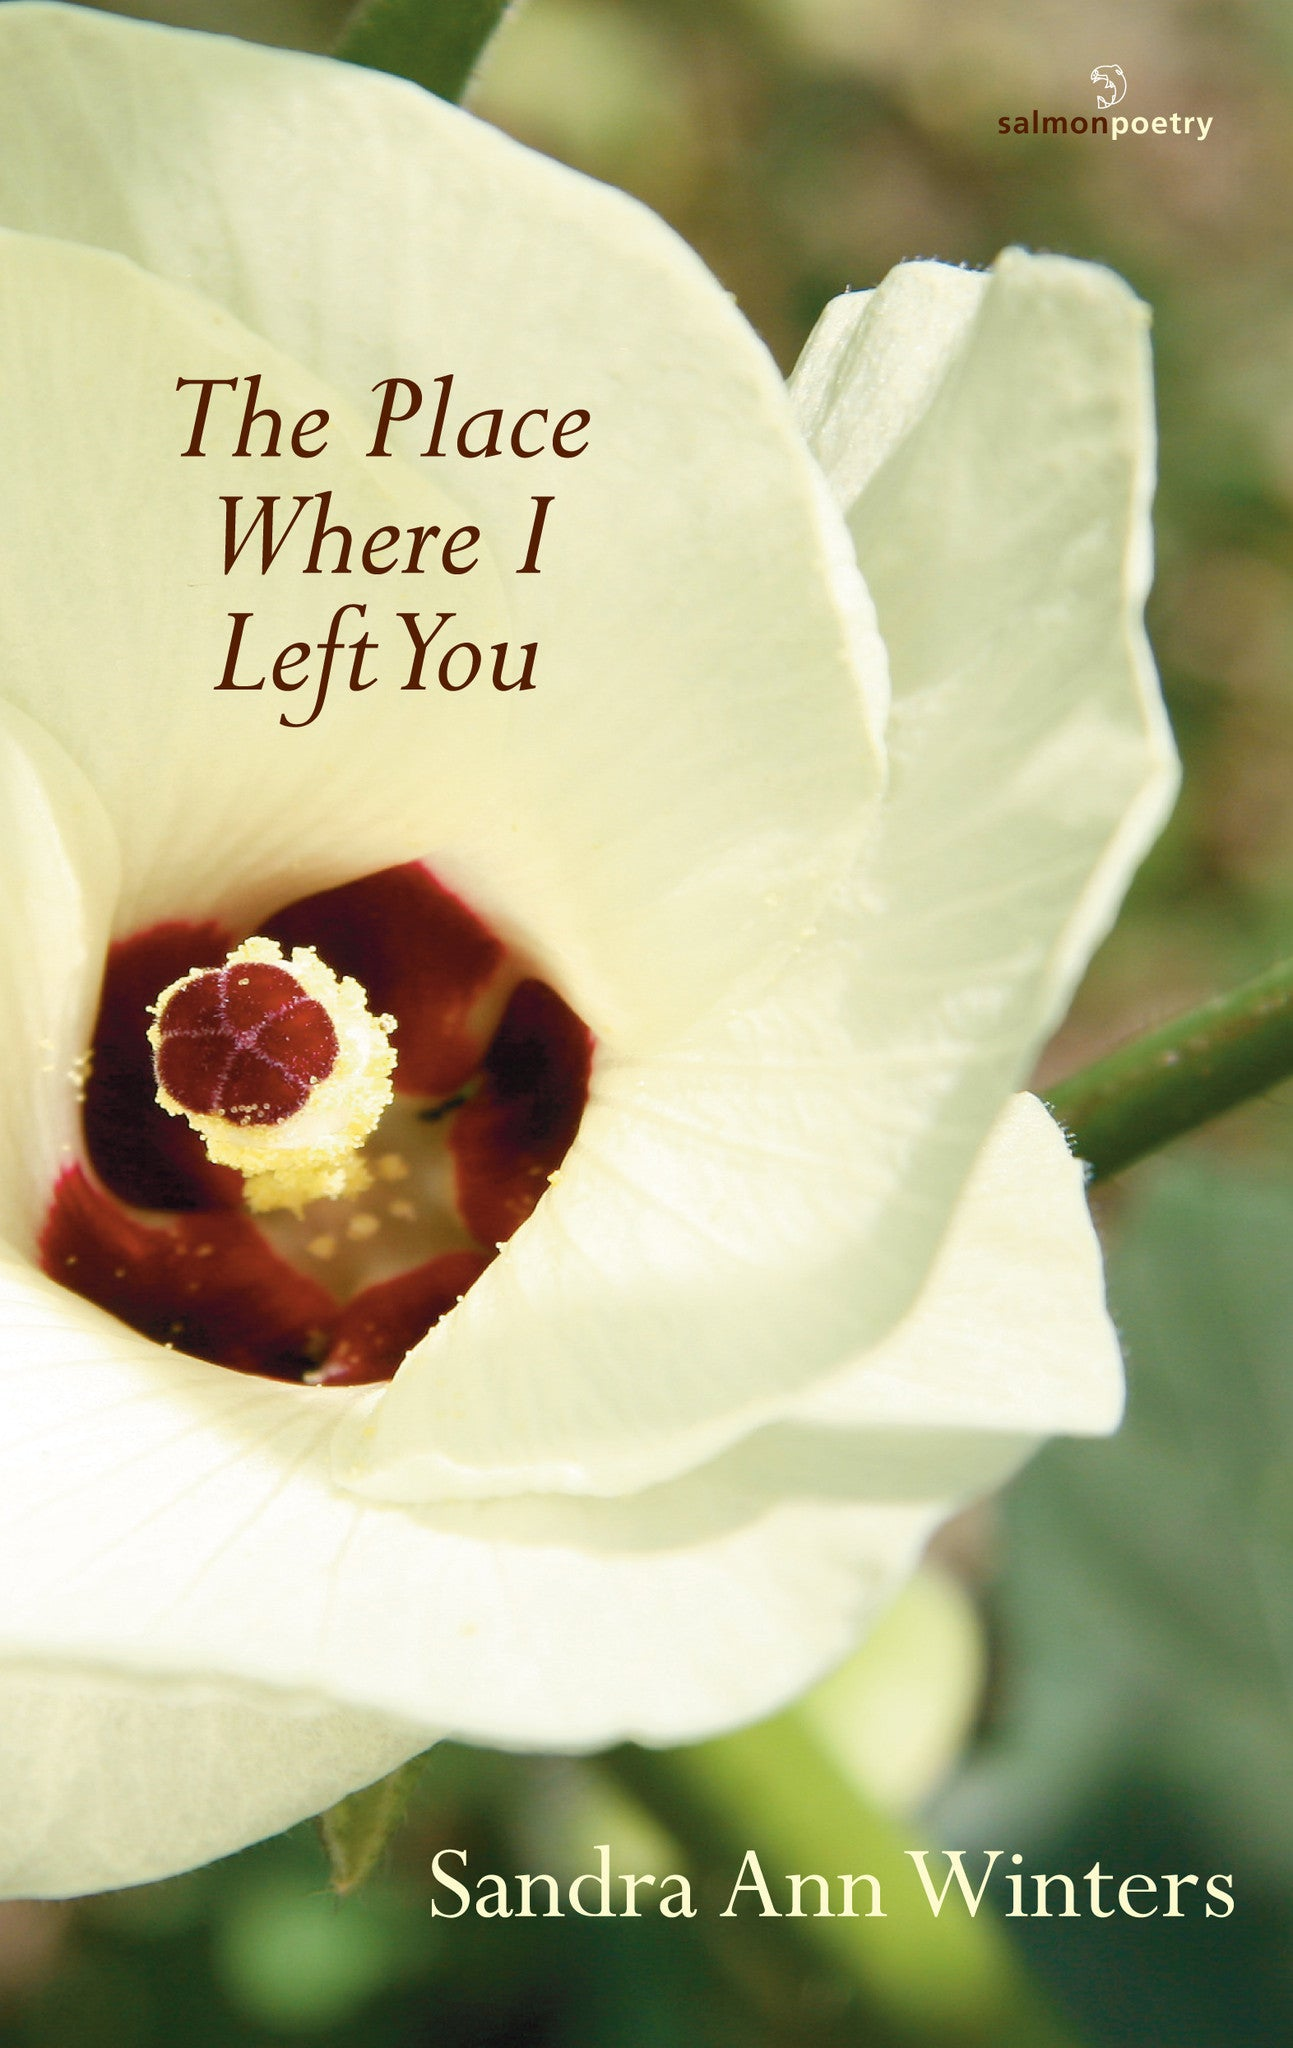 The Place Where I Left You